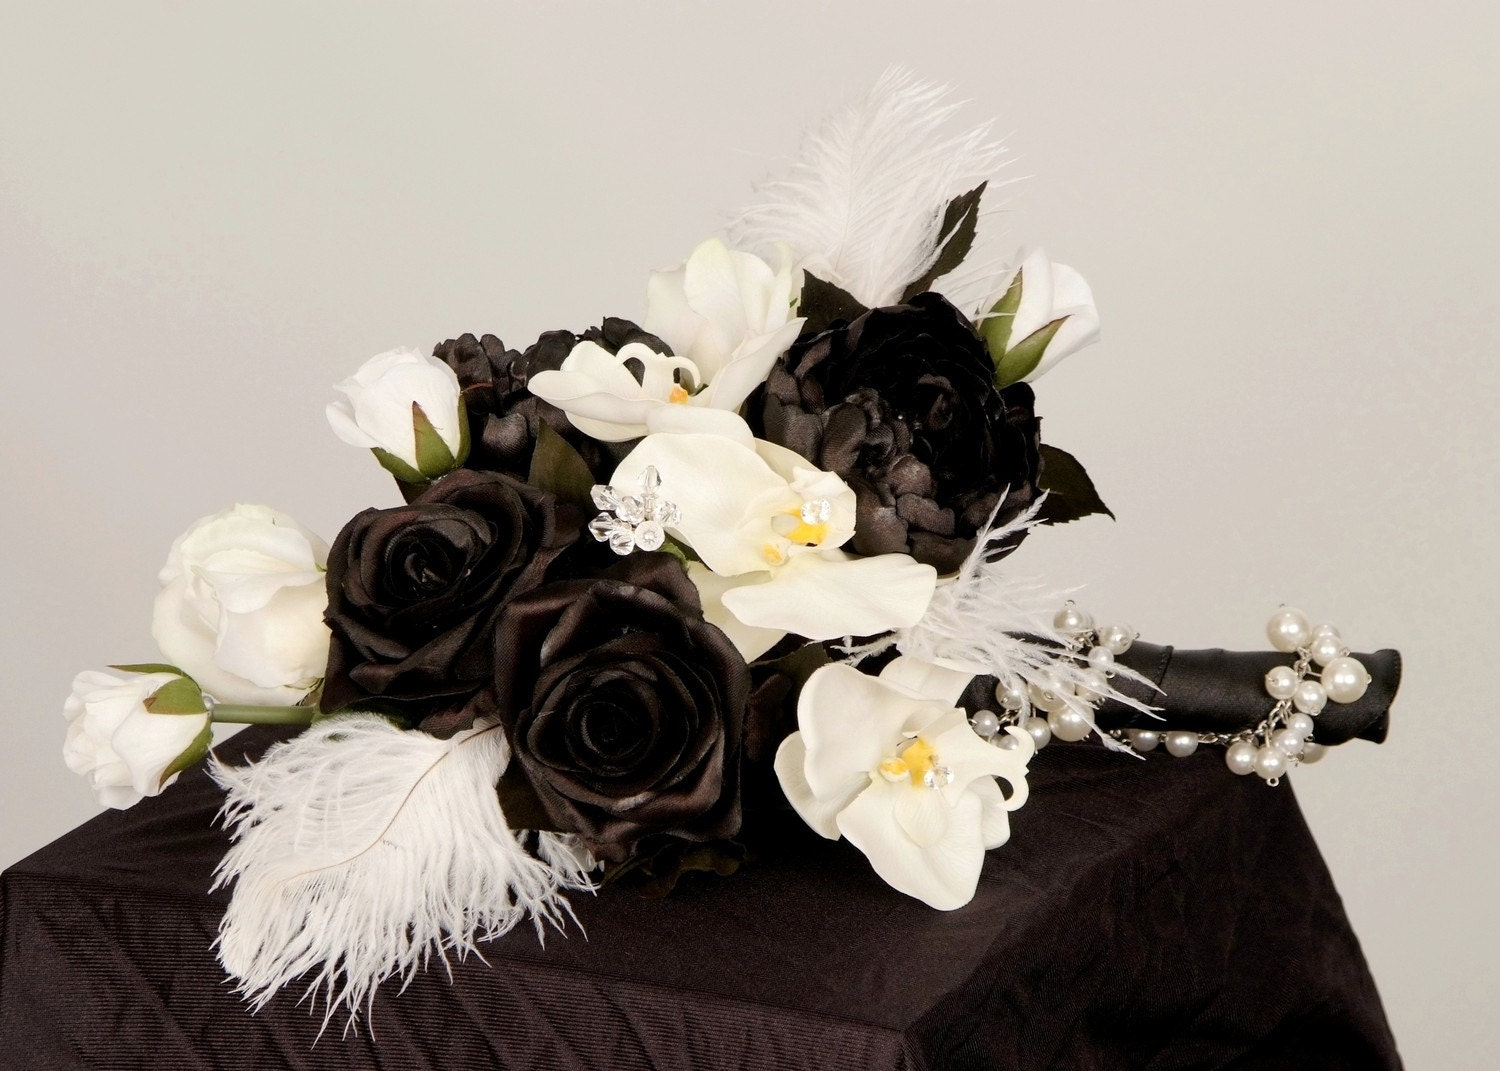 Dongetrabi black orchid flower bouquet images black orchid flower bouquet izmirmasajfo Choice Image